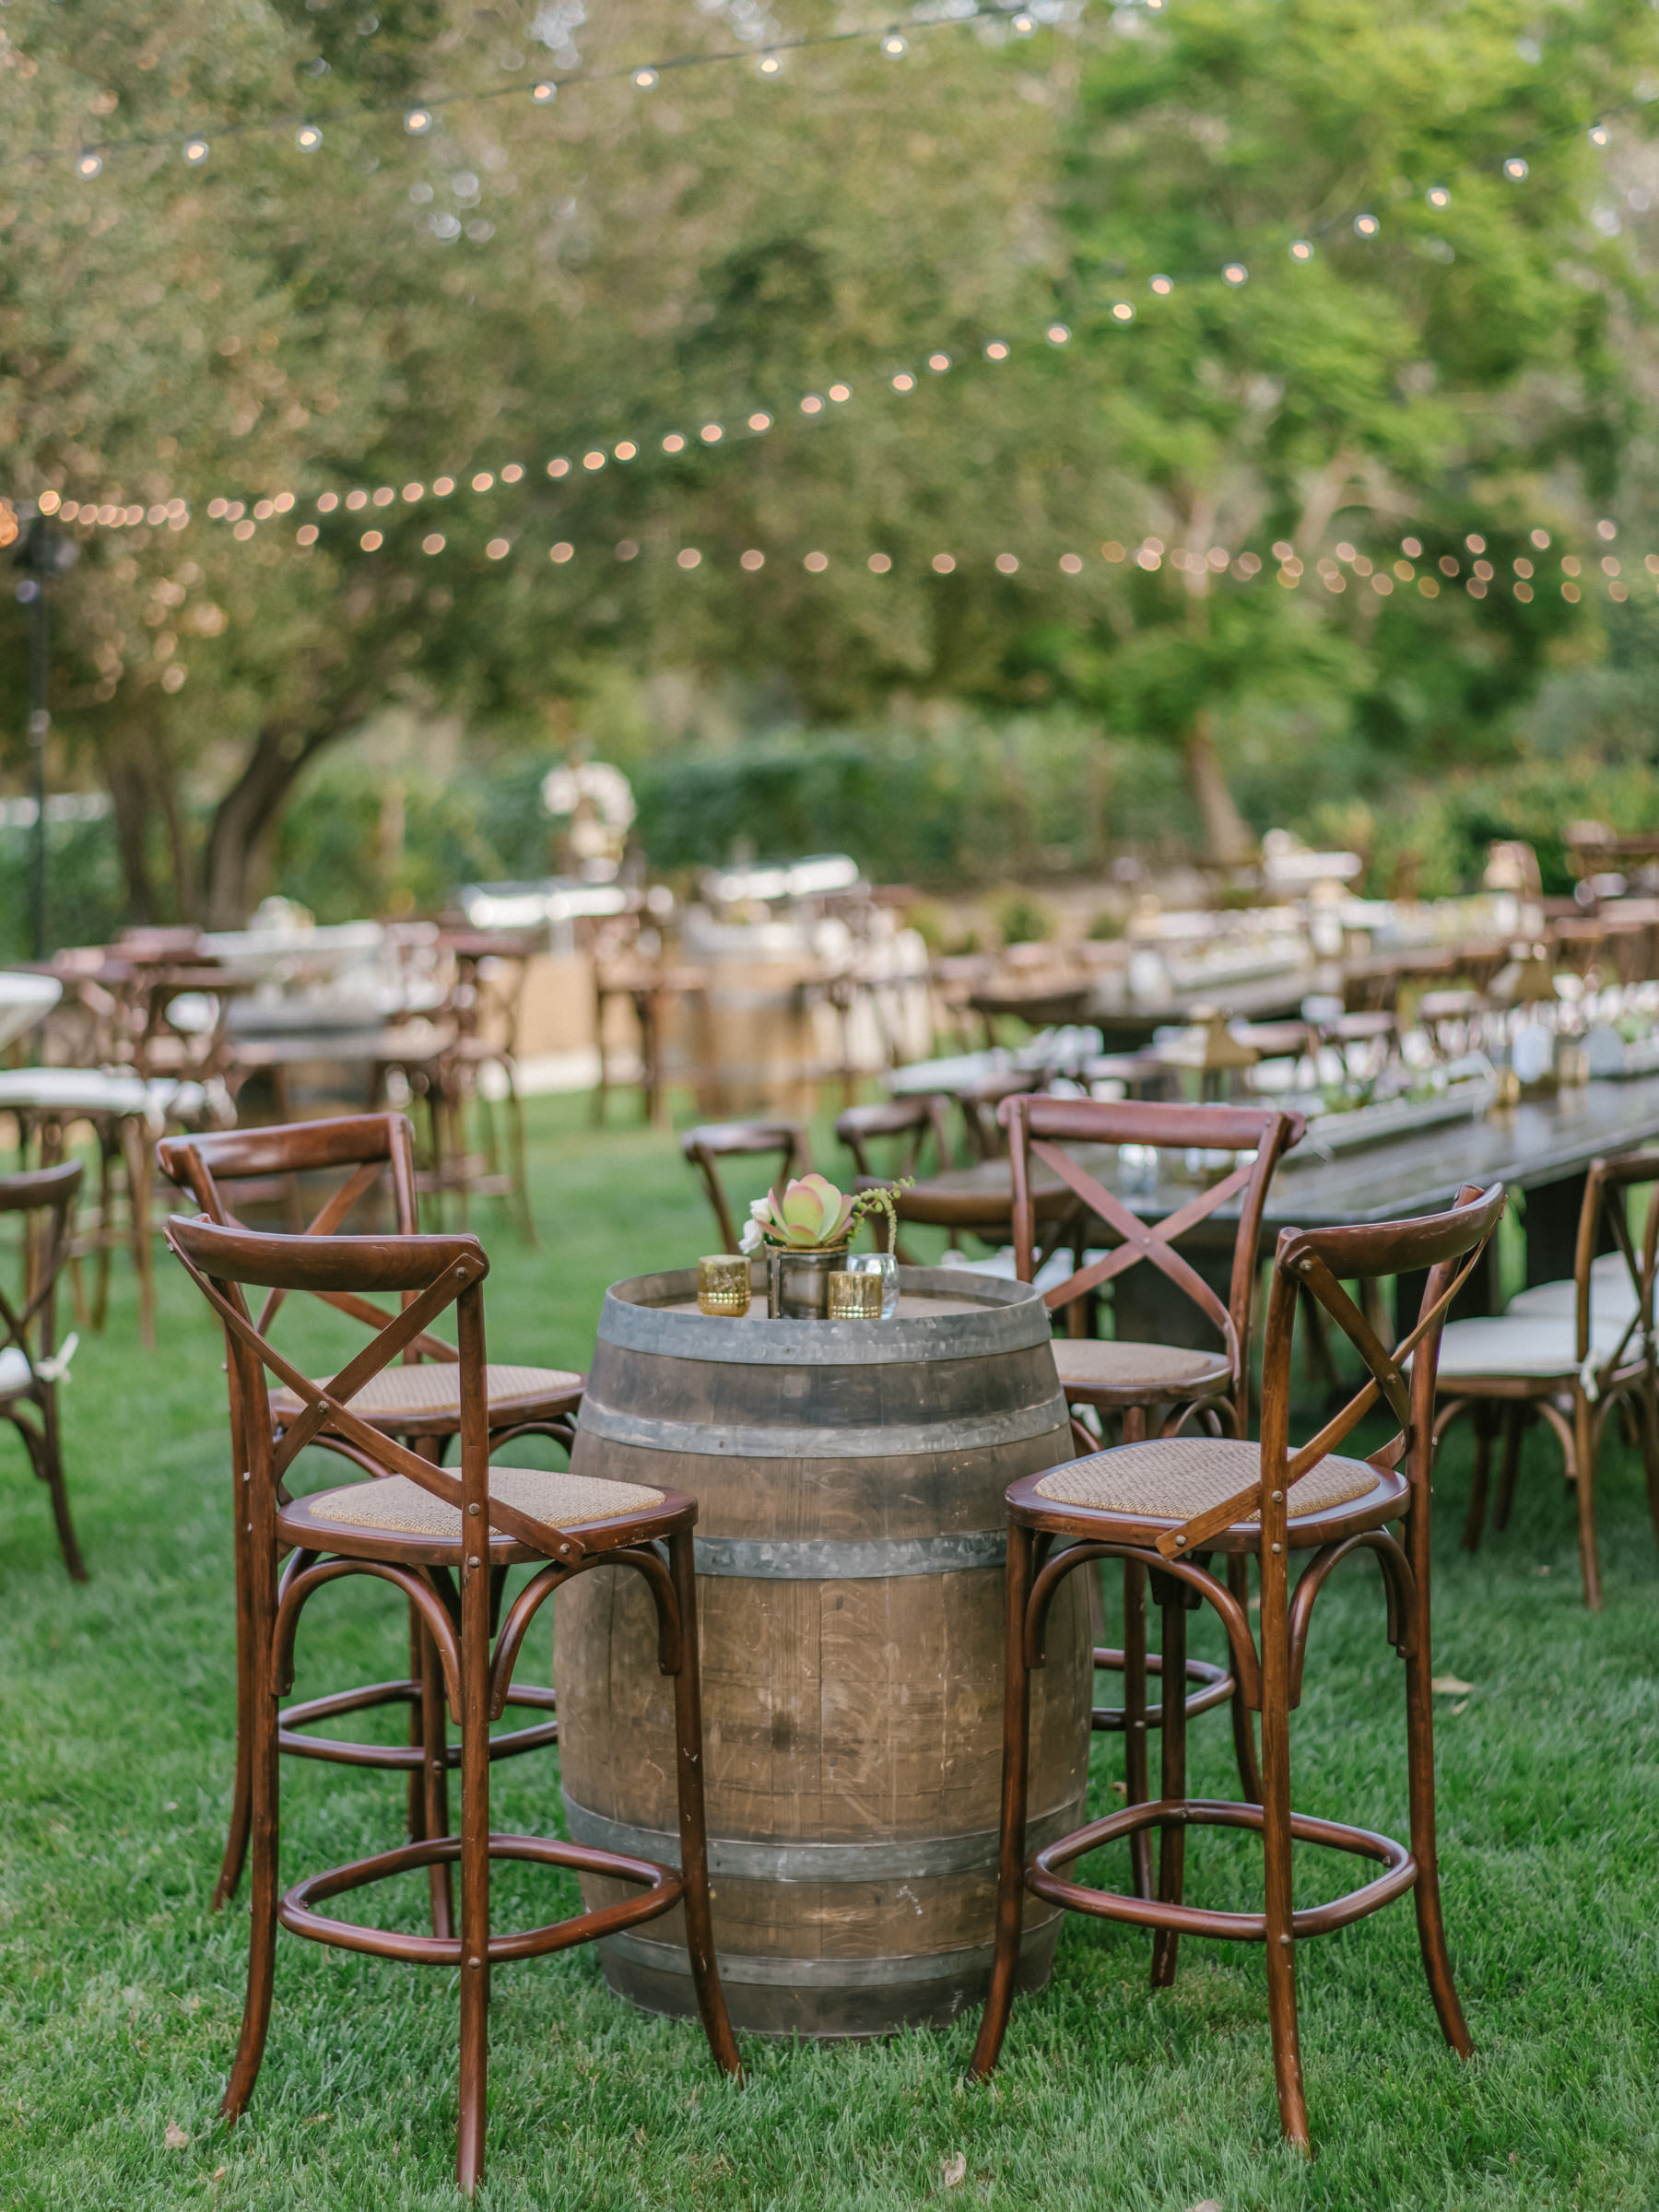 Rustic outdoor reception area with strings of lights - photo by Amy and Stuart Photography